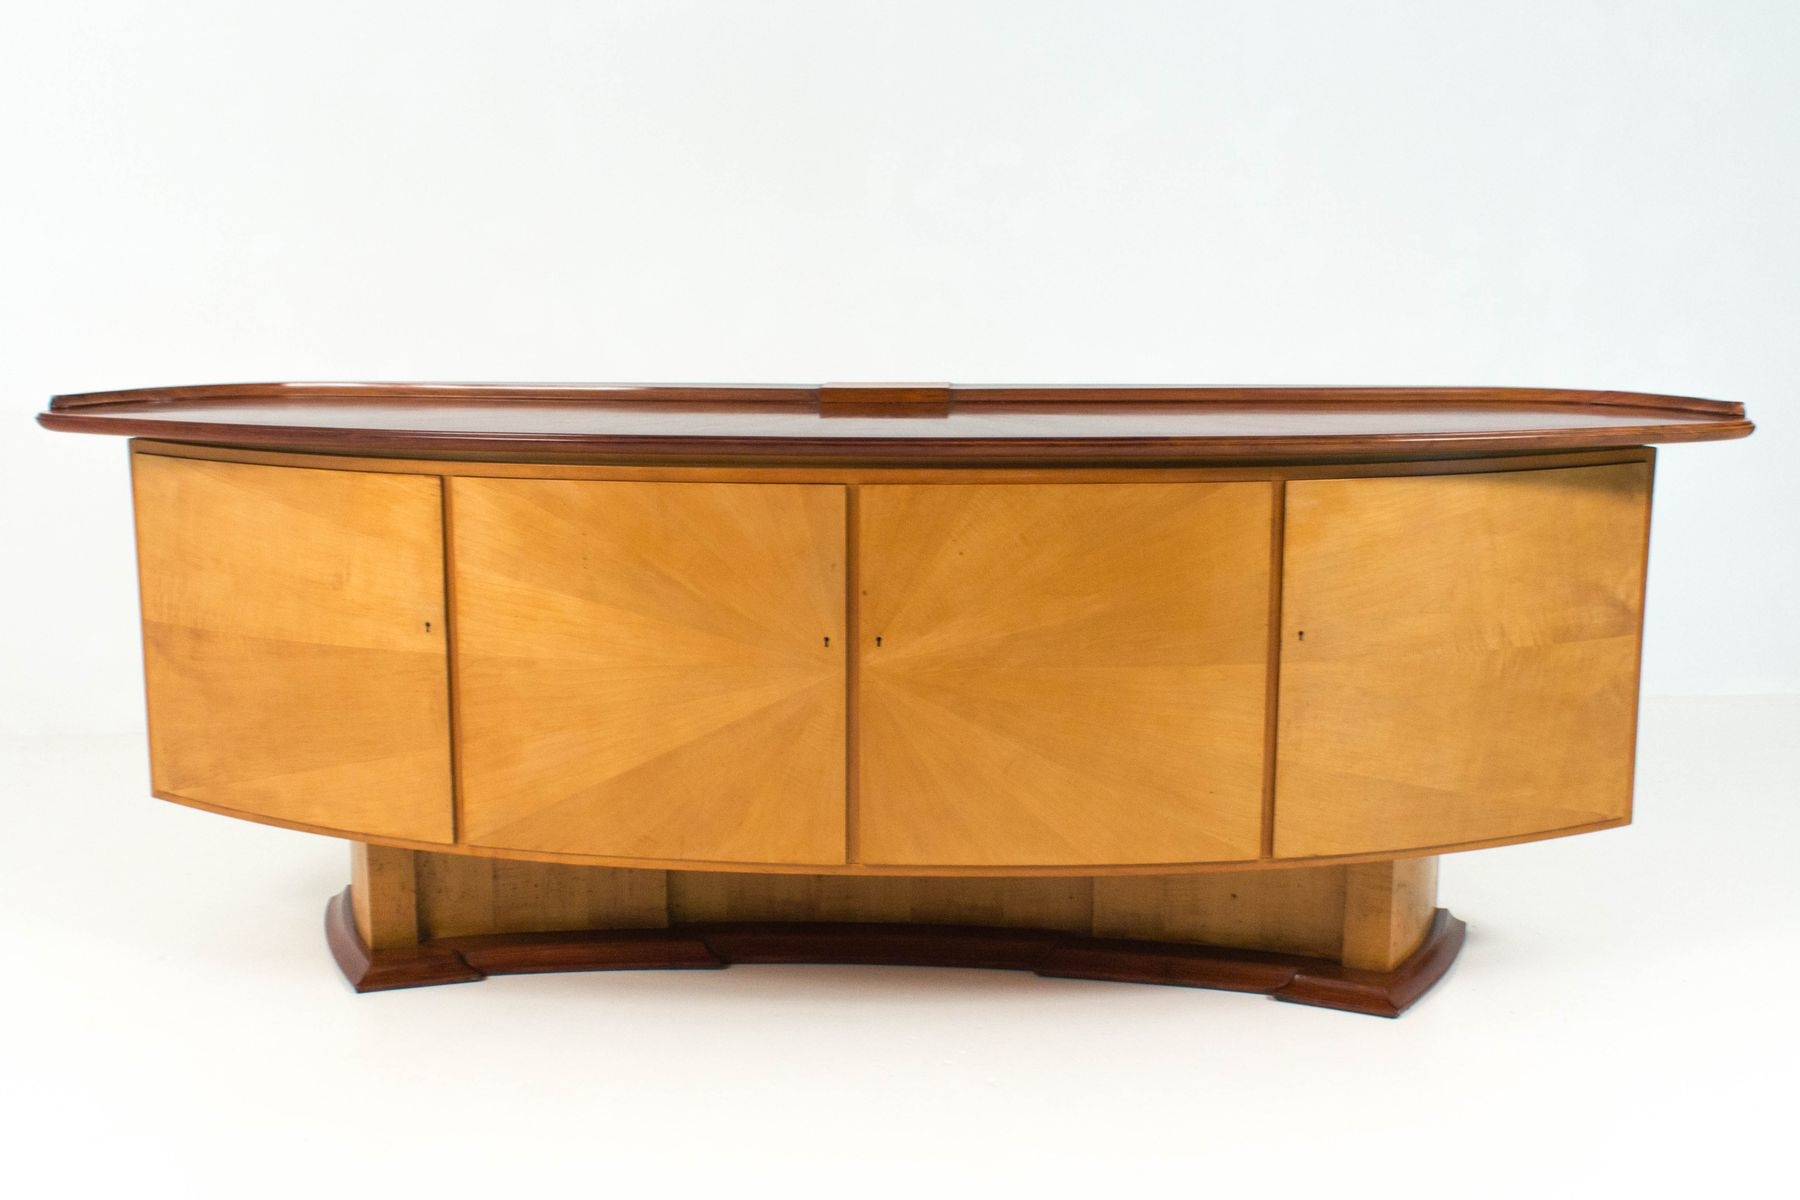 Art deco sideboard by gebroeders reens 1930s for sale at - Deko sideboard ...